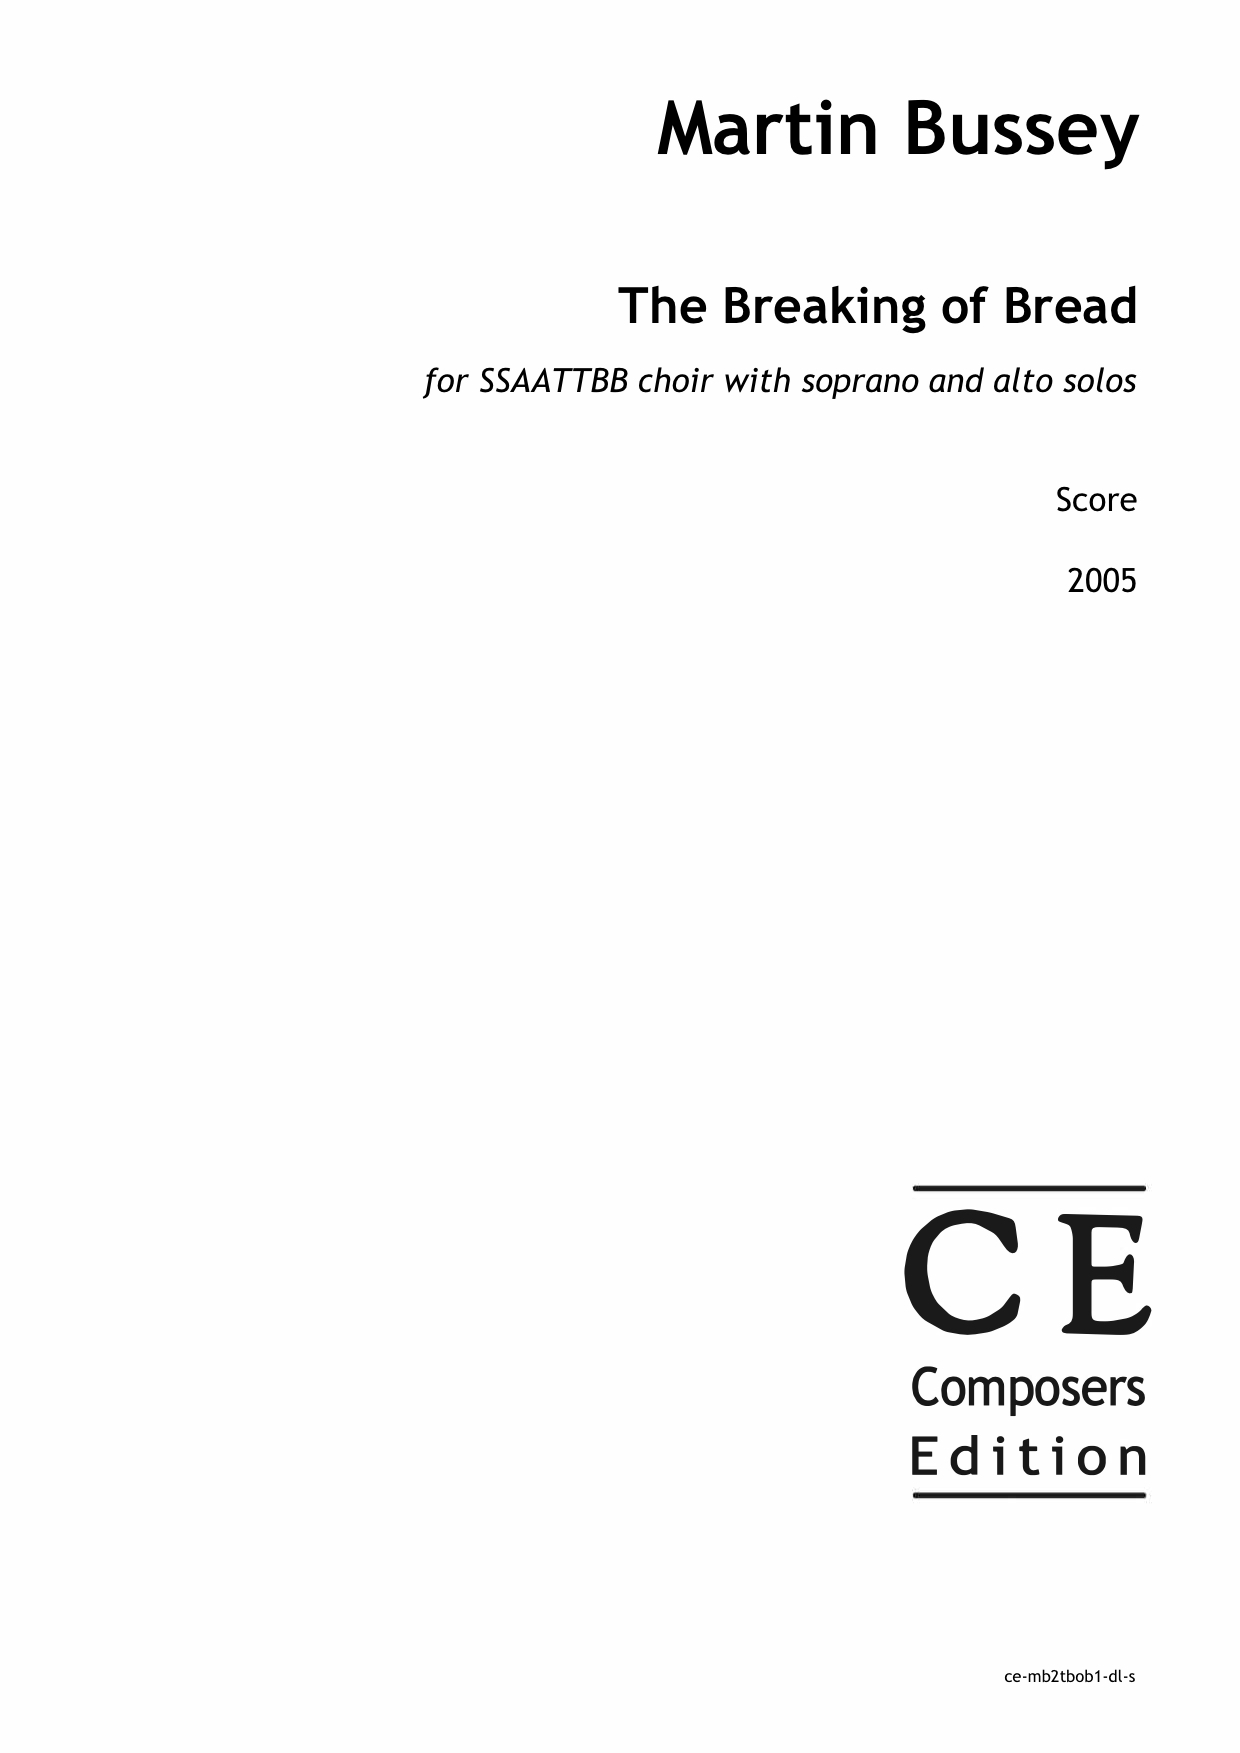 Martin Bussey: The Breaking of Bread for SSAATTBB choir with soprano and alto solos